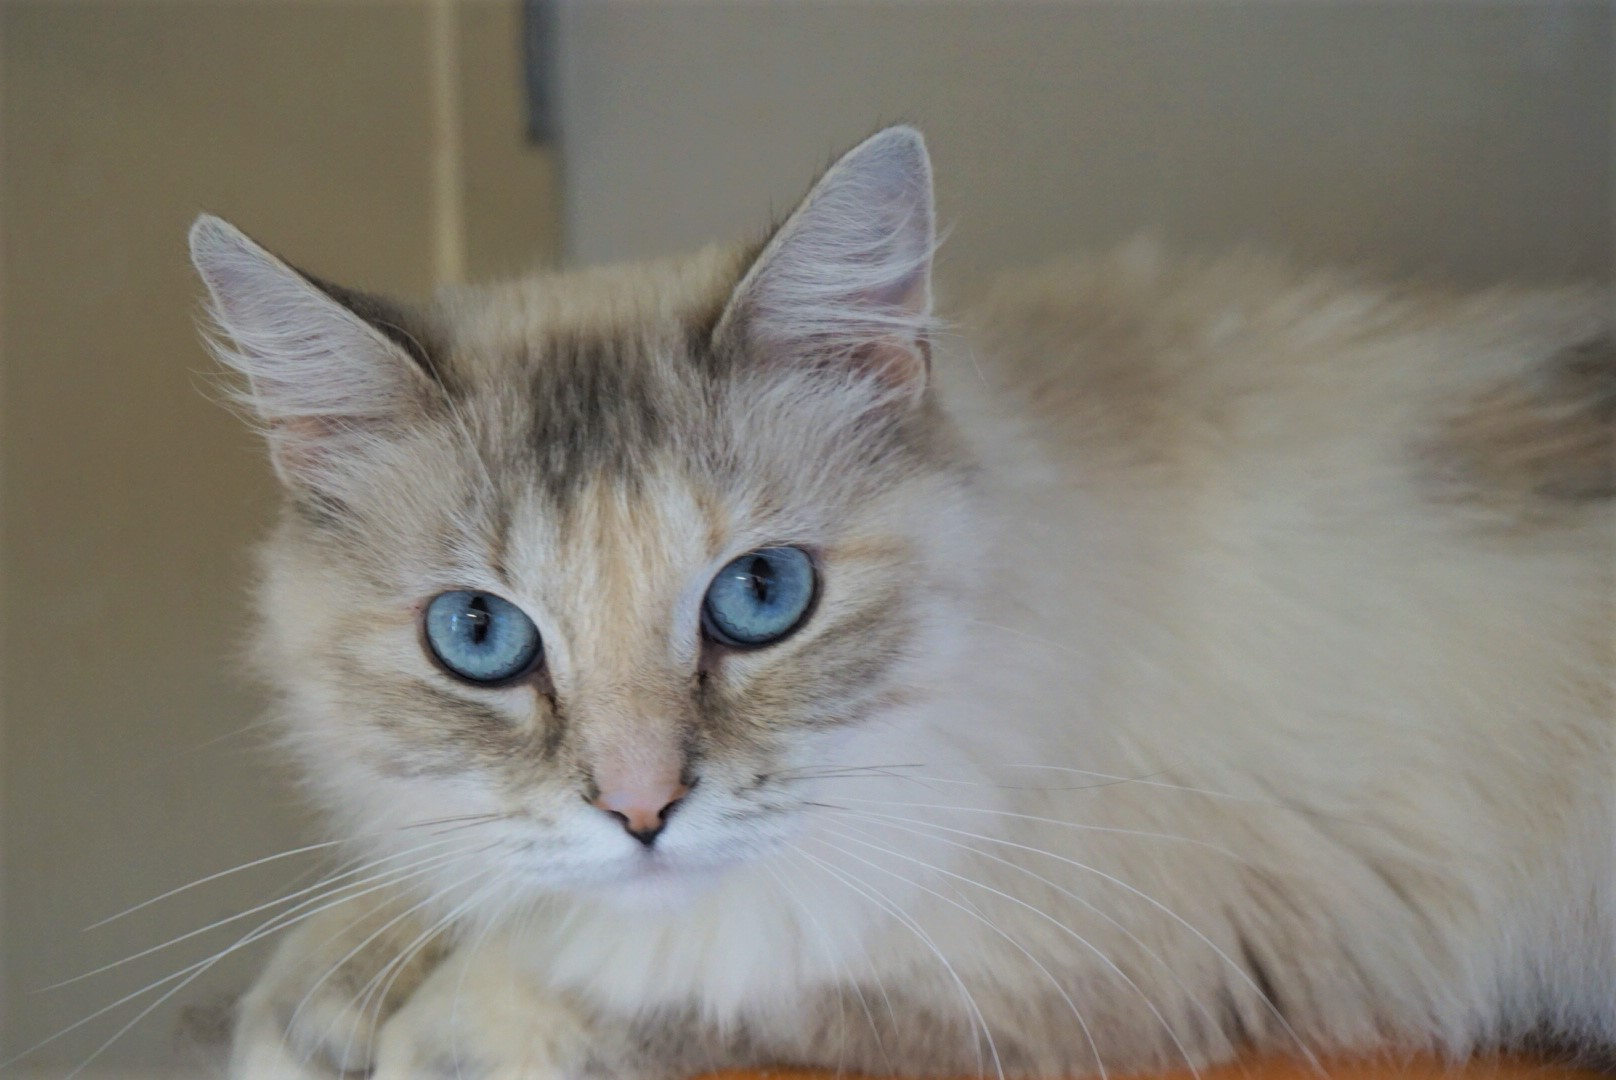 Siamese Cross Dilute tortoise shell - Long Hair Female - spayed Date of birth: February 2015 Meet Cotton! This lovely gal is easy-going and sweet. While she doesn't mind being brushed, she much prefers being pet and getting her head scratched. Cotton would do very well in a home with other mild-mannered cats, or as a single pet. If you would like to meet this beautiful girl, you can visit Cotton at Pet Valu on Meadowood, during regular store hours.